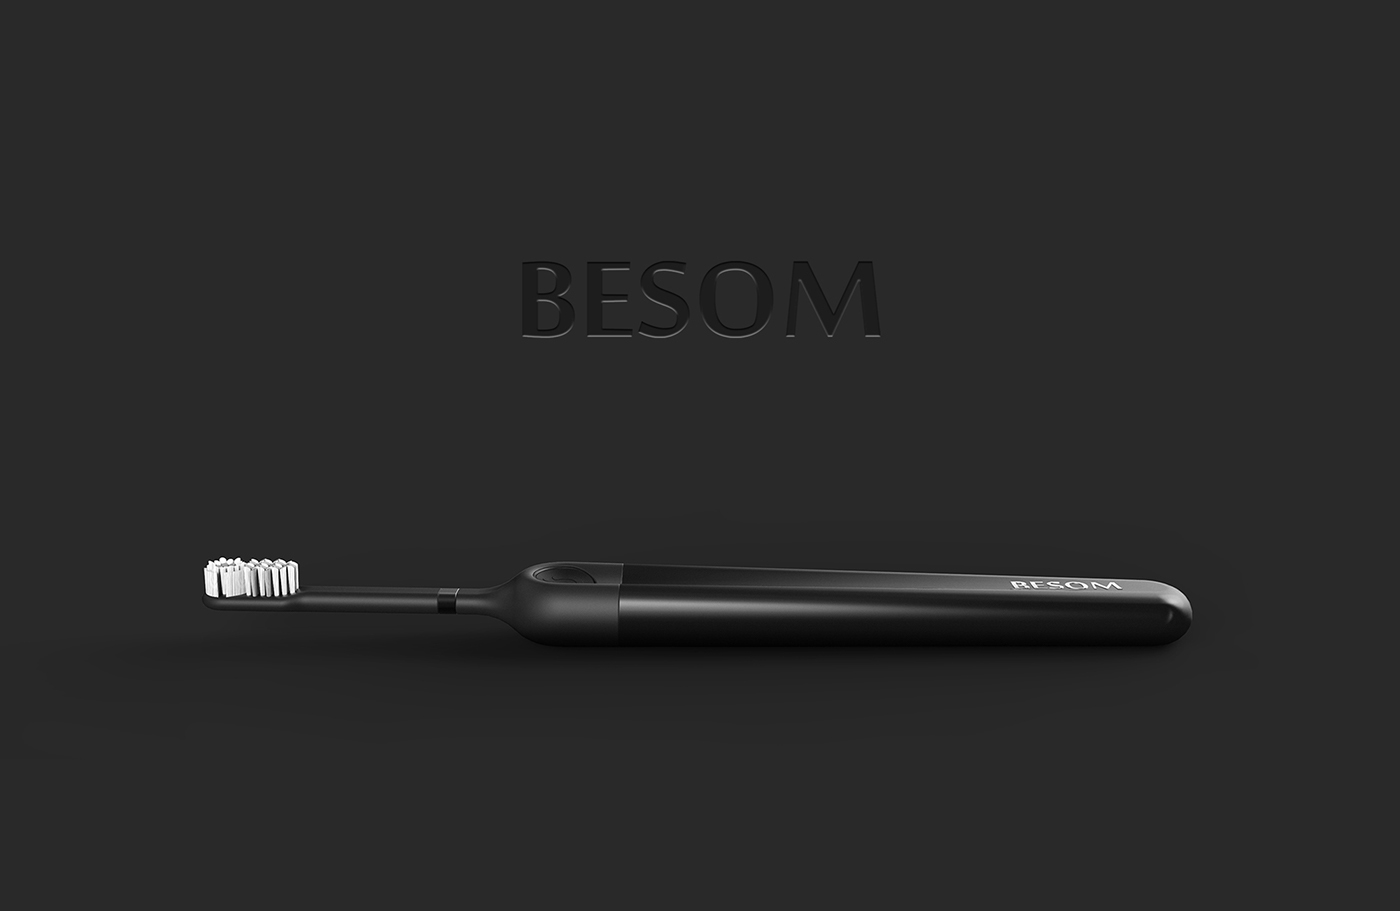 toothbrush electric toothbrush handheld beauty oral care minimalist brush Mouth bathroom hygiene